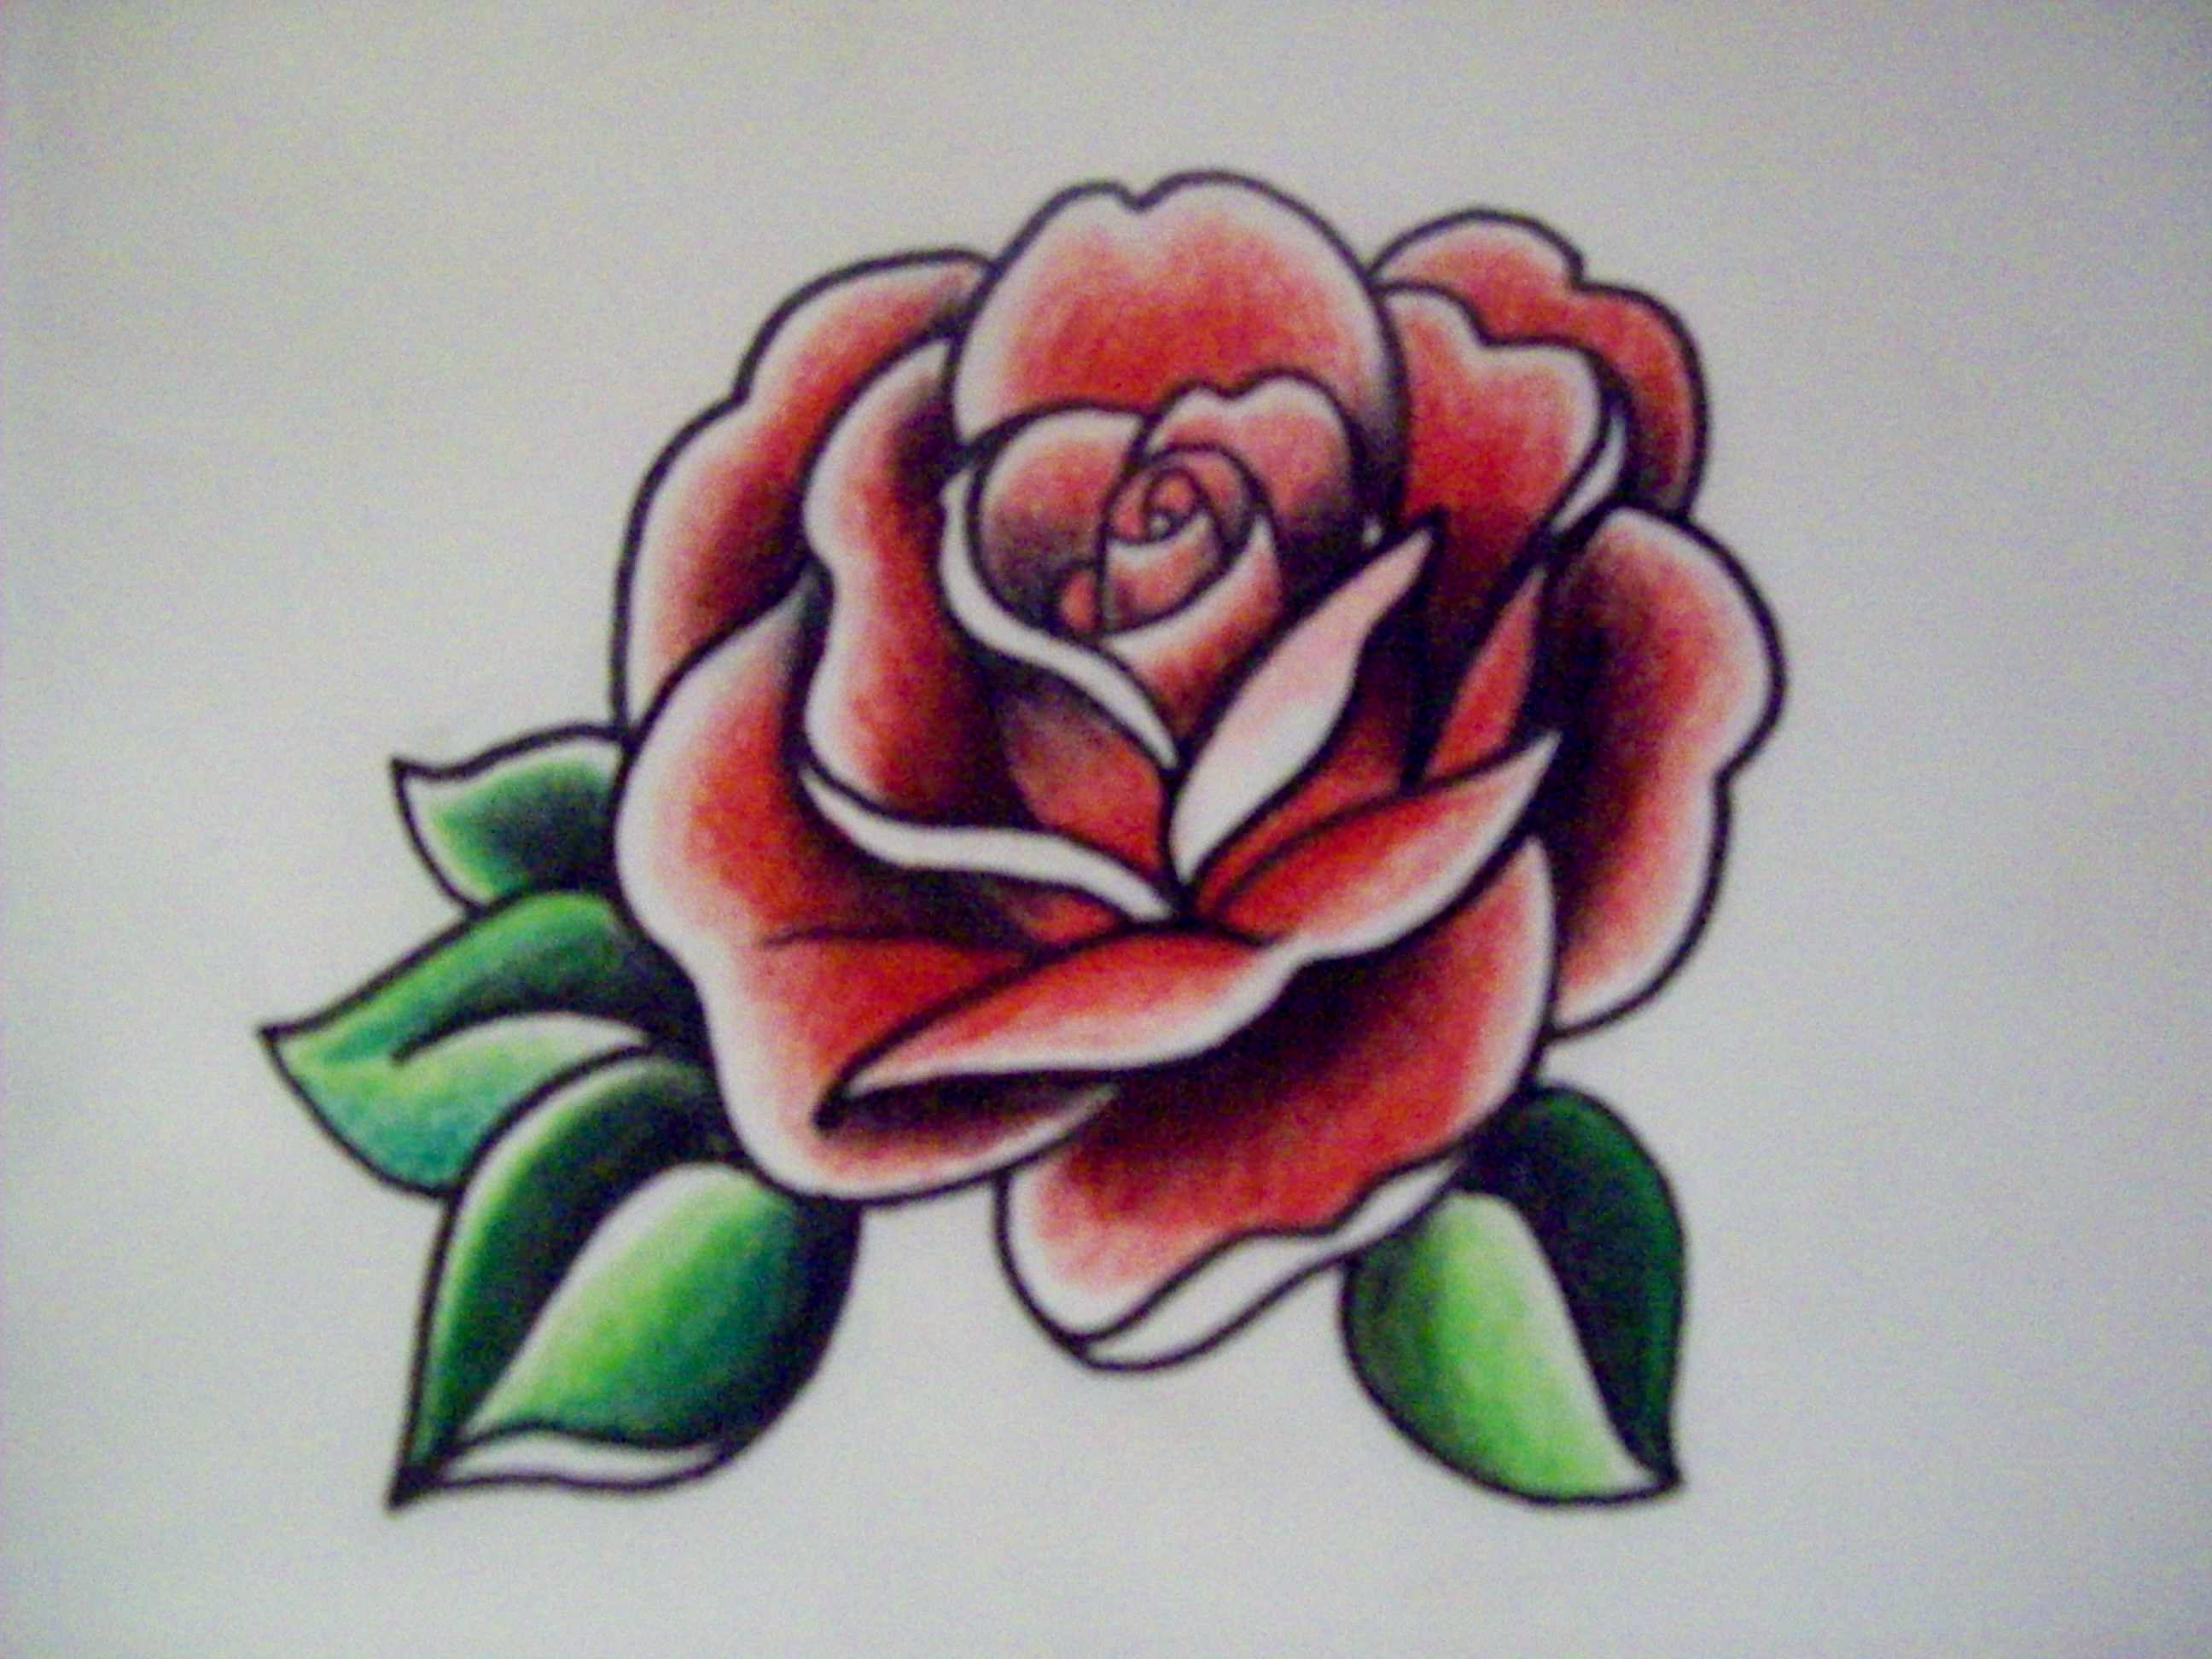 Drawn rose marker Rose Colored images best and